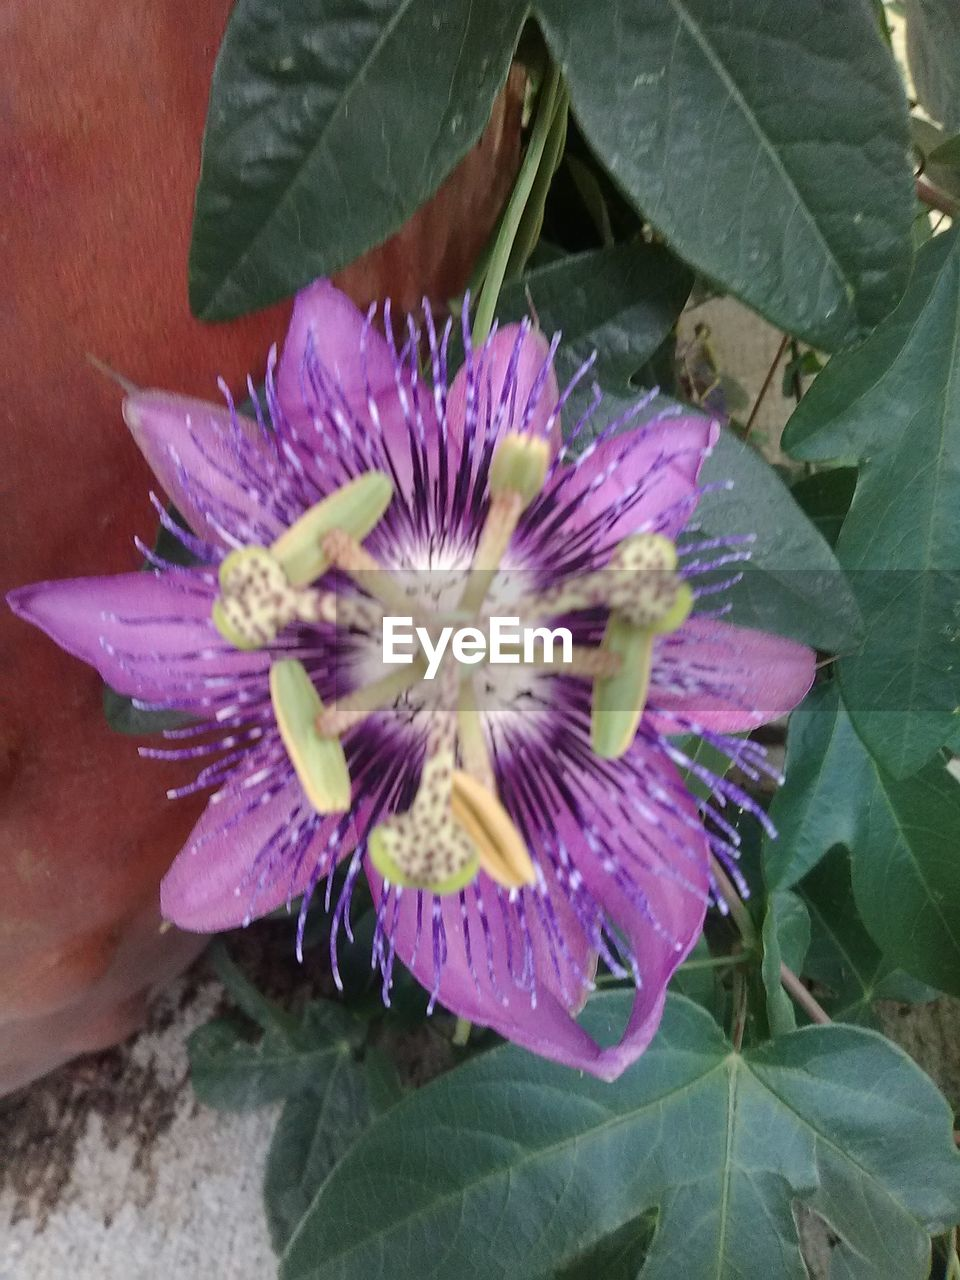 flower, leaf, petal, purple, plant, flower head, fragility, growth, beauty in nature, nature, freshness, no people, day, blooming, close-up, outdoors, passion flower, water